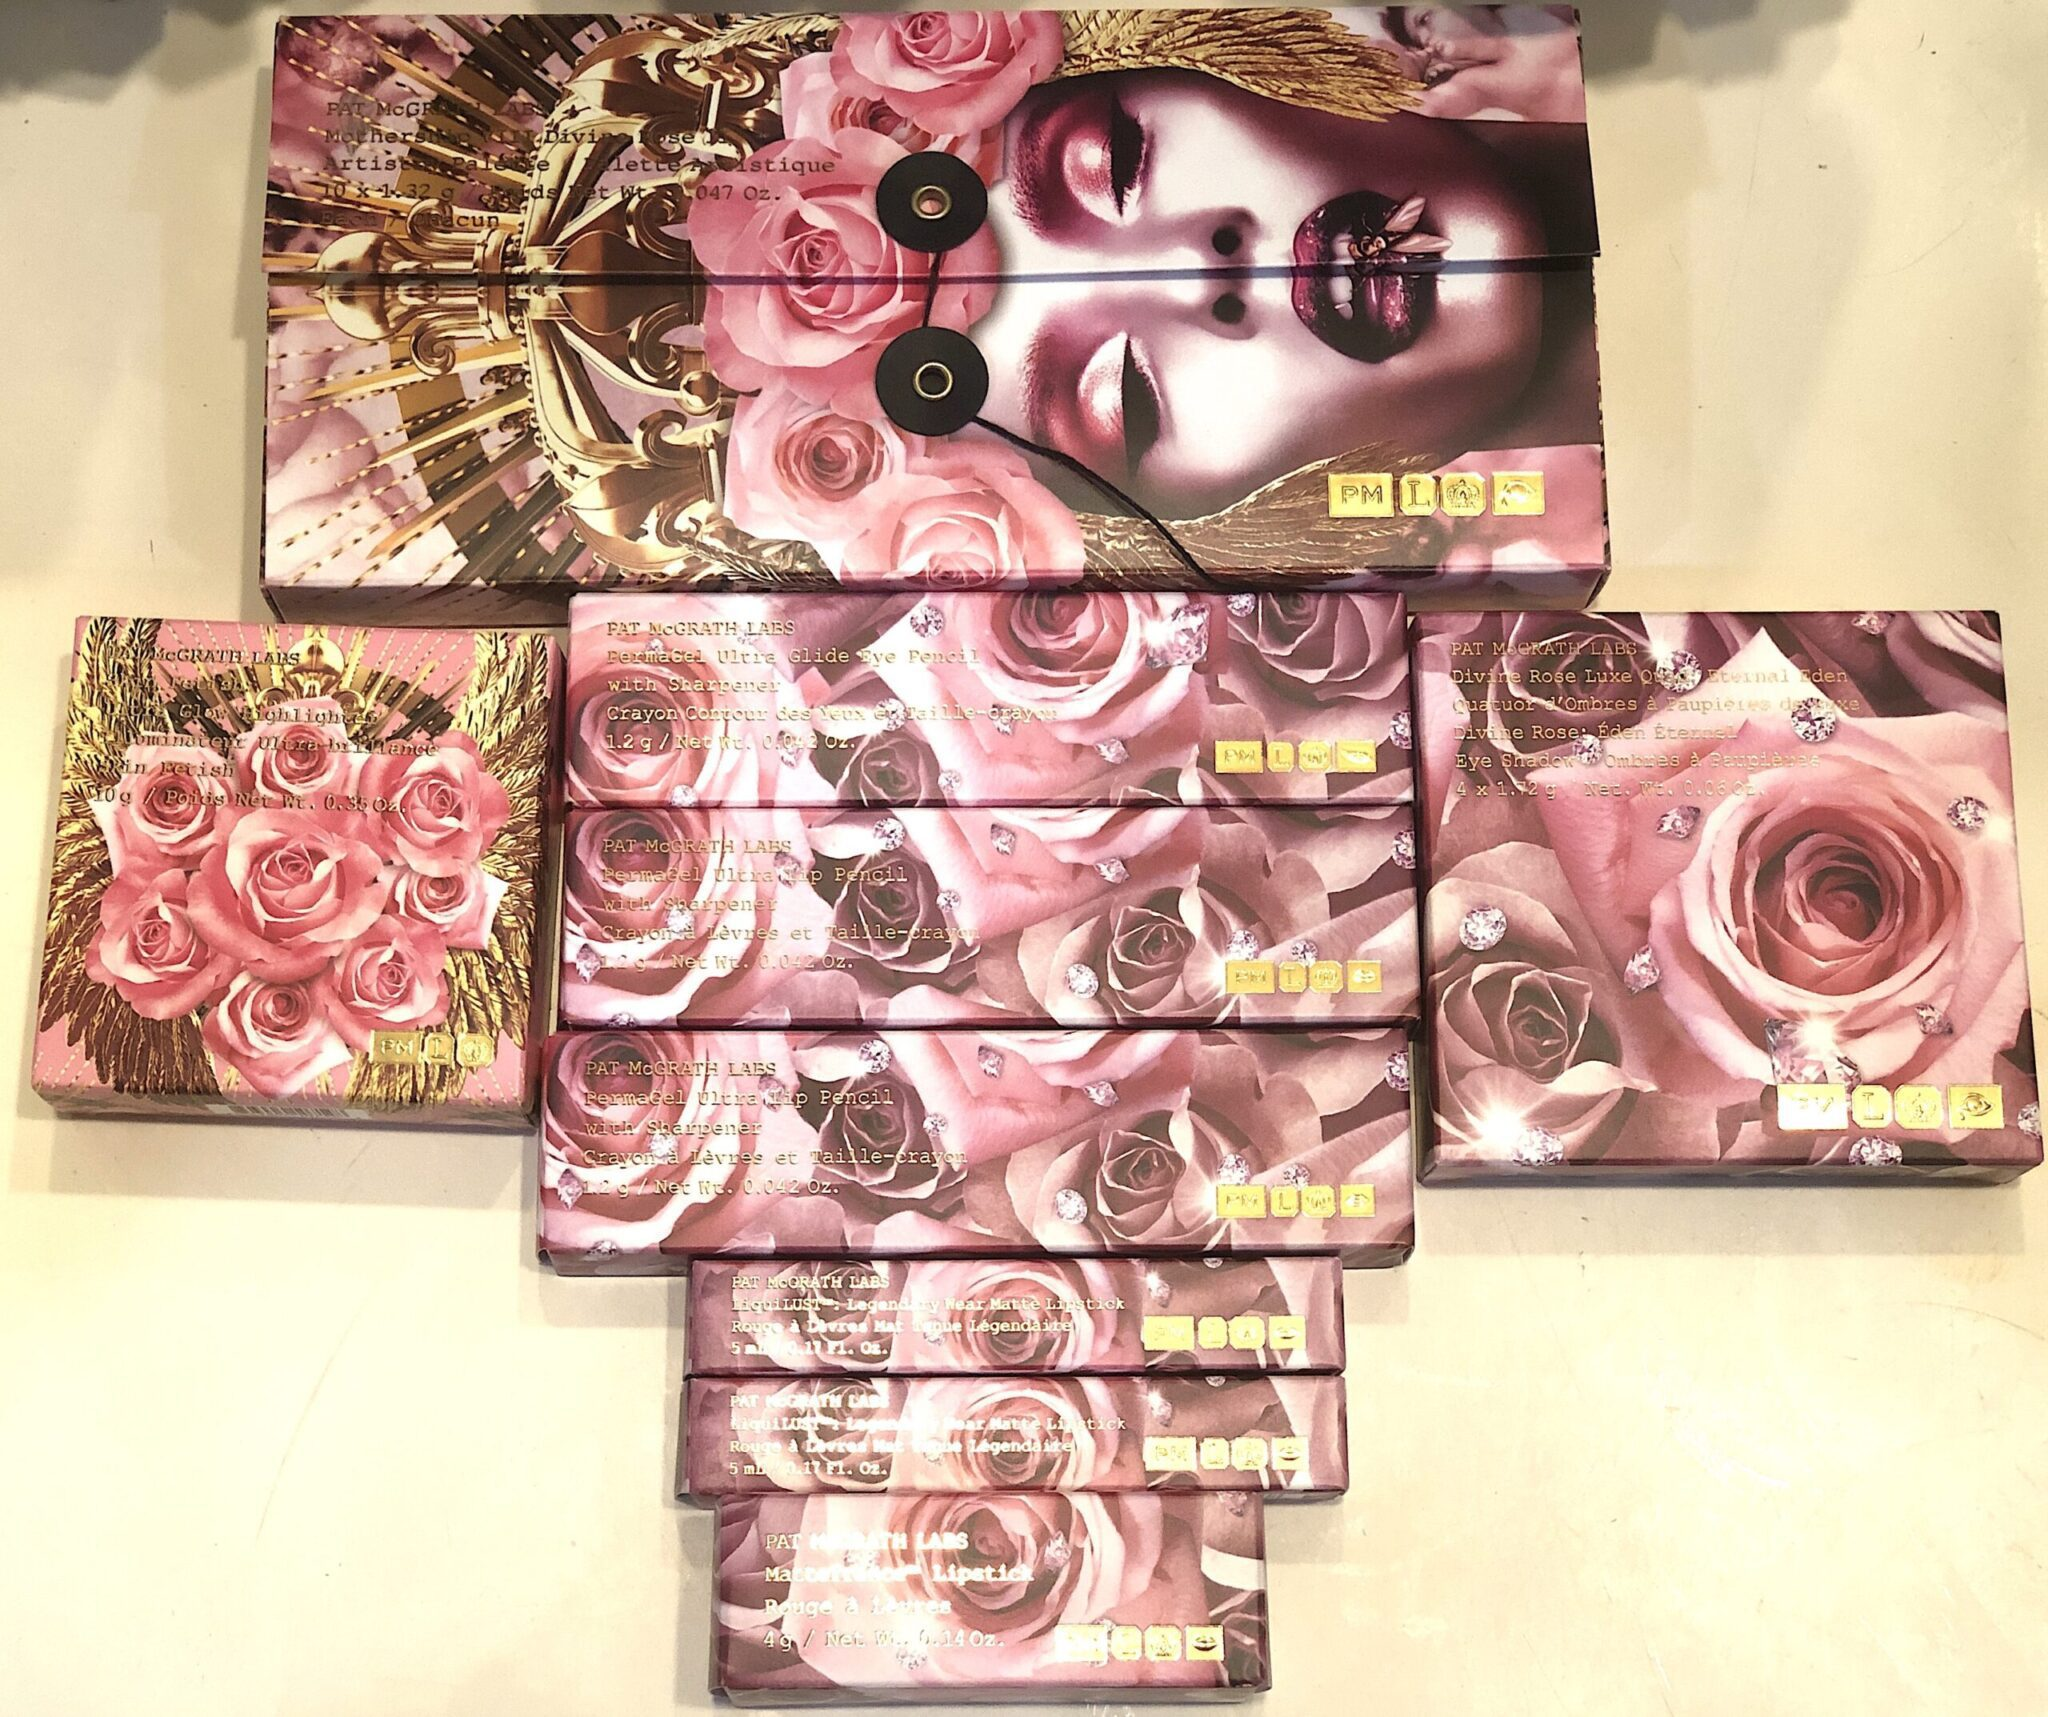 DIVINE ROSE 11 TOTALE COLLECTION PACKAGING